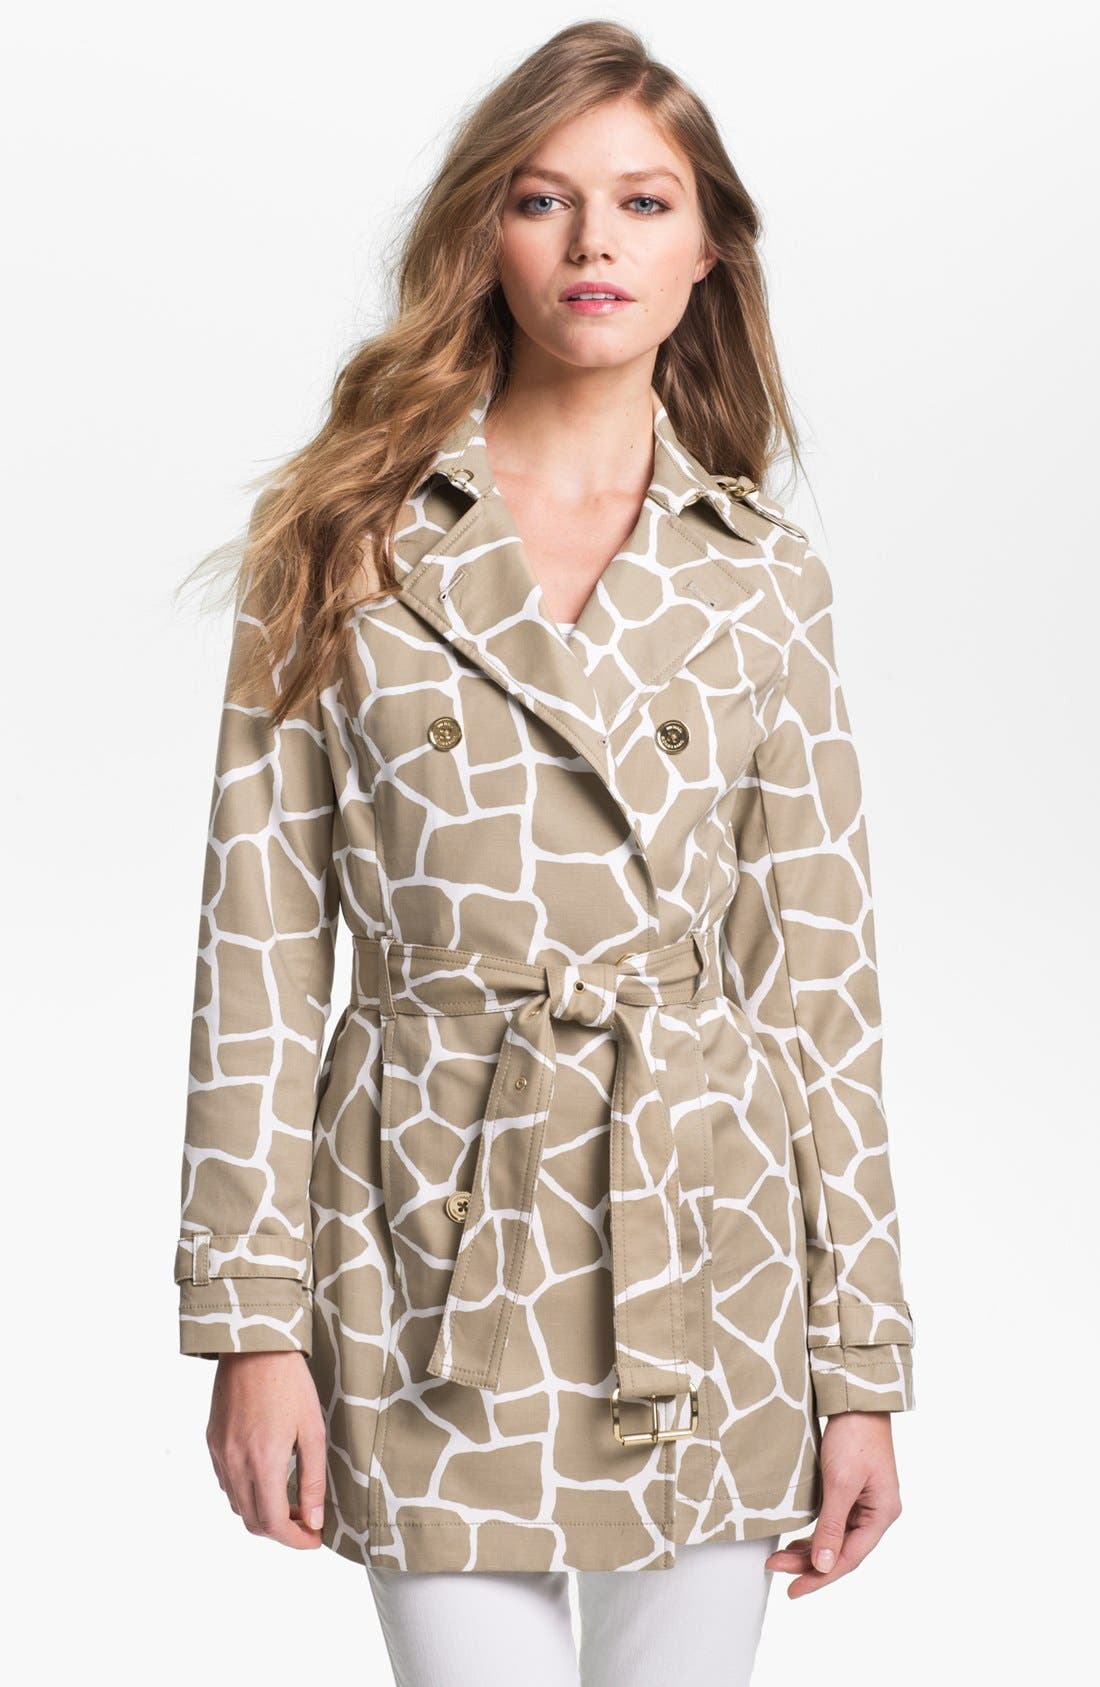 Alternate Image 1 Selected - MICHAEL Michael Kors Giraffe Print Trench Coat (Petite)